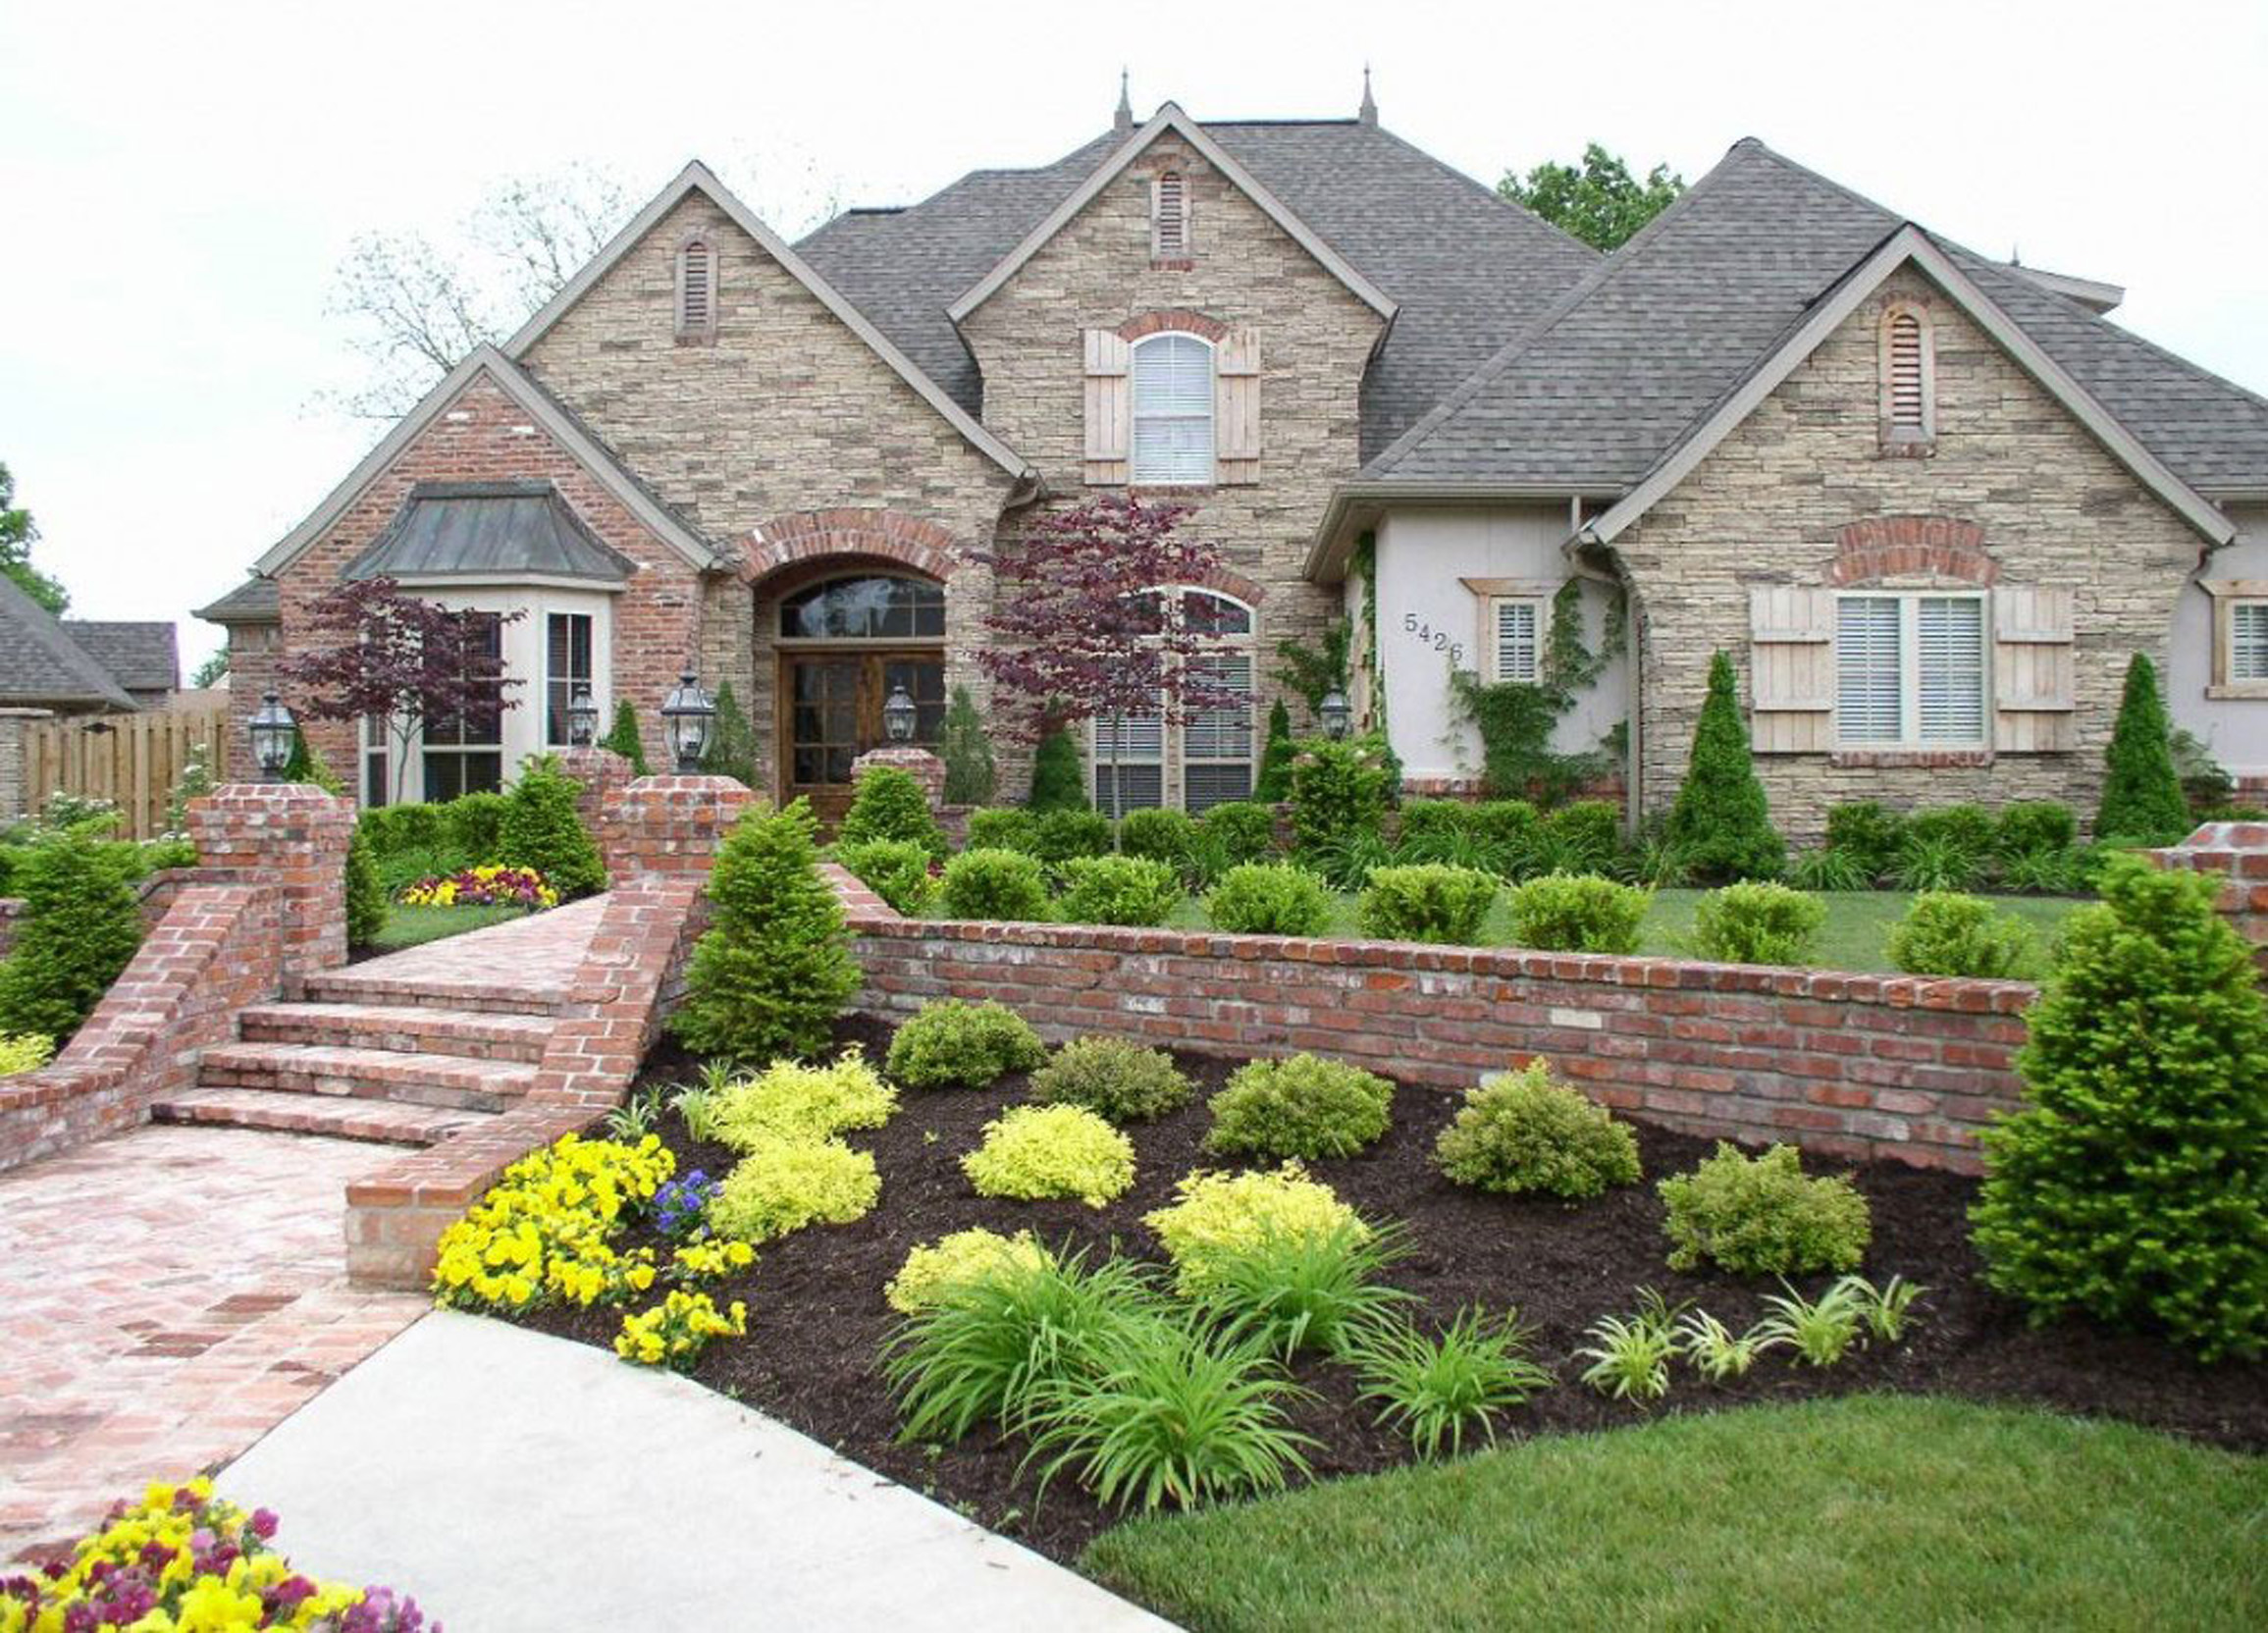 architecture-endearing-luxury-and-classic-house-landscaping-ideas-landscaping-photo-for-home